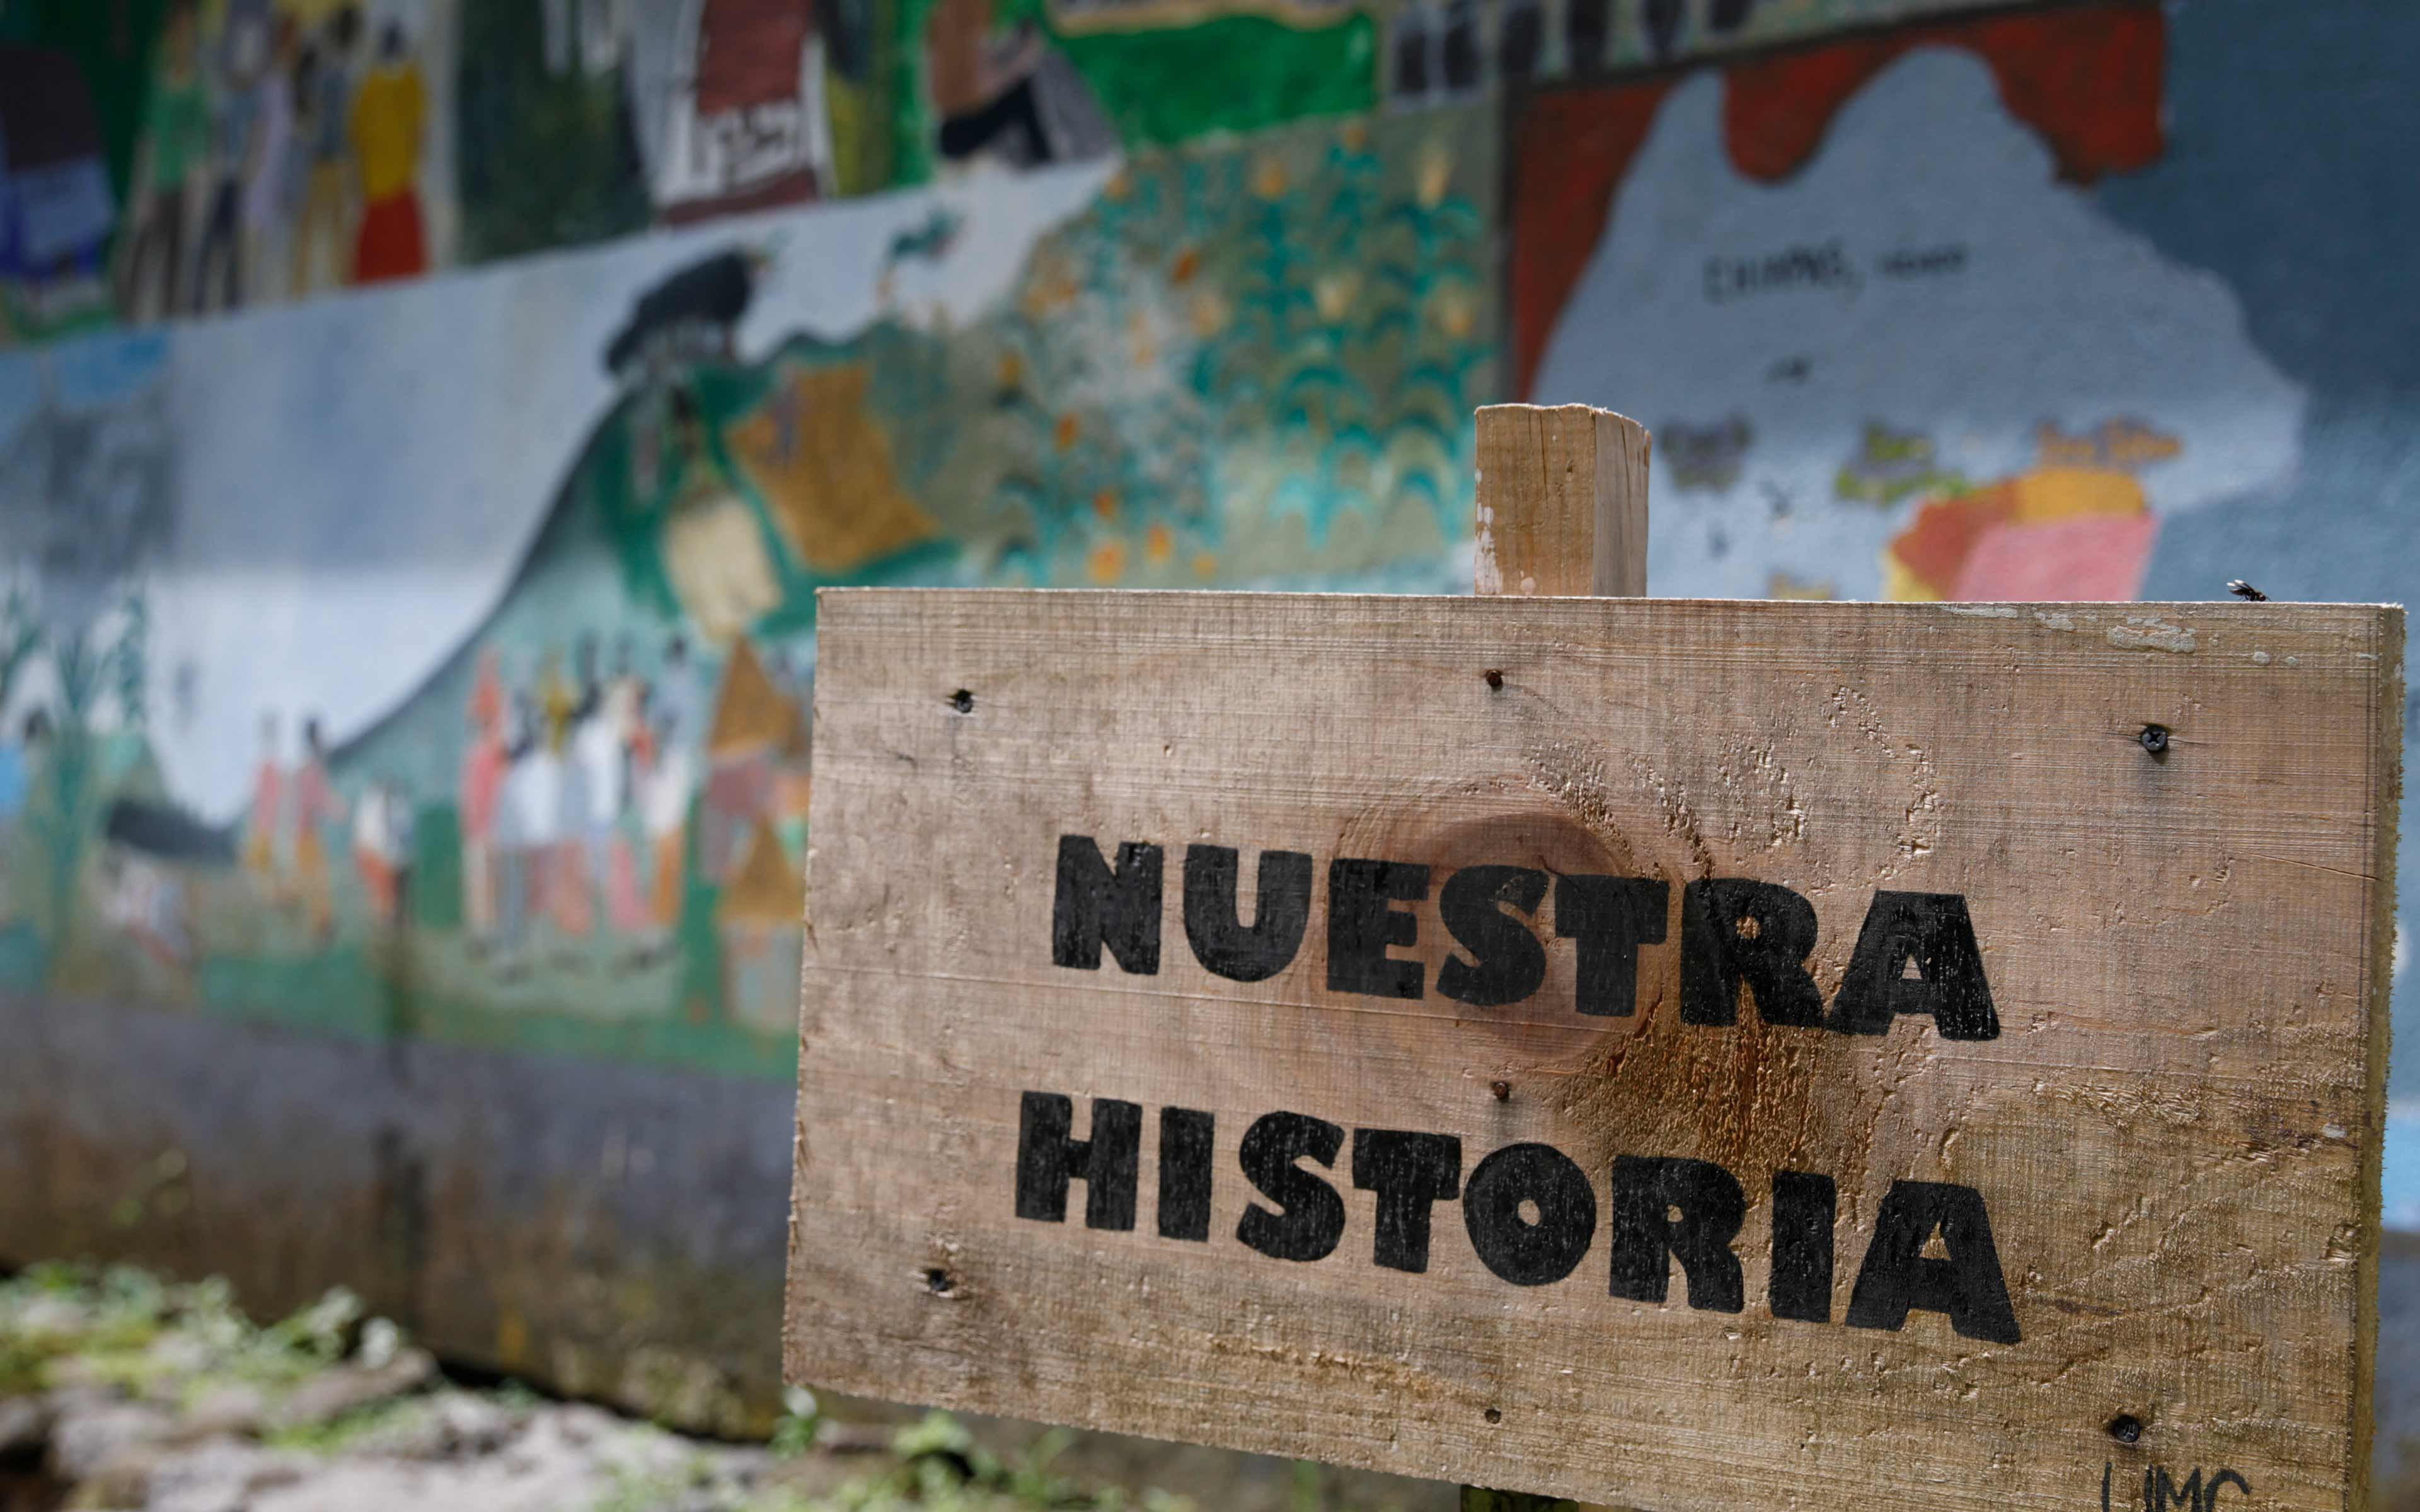 """Our Story:"" A sign in front of mural depicting the tragic history of the community in La Trinidad, from a peaceful indigenous Maya village in the western highlands, to conflict and displacement to Mexico in the 1980s, and finally to repatriation and resettlement in Escuintla after the 1998 Peace Accords."